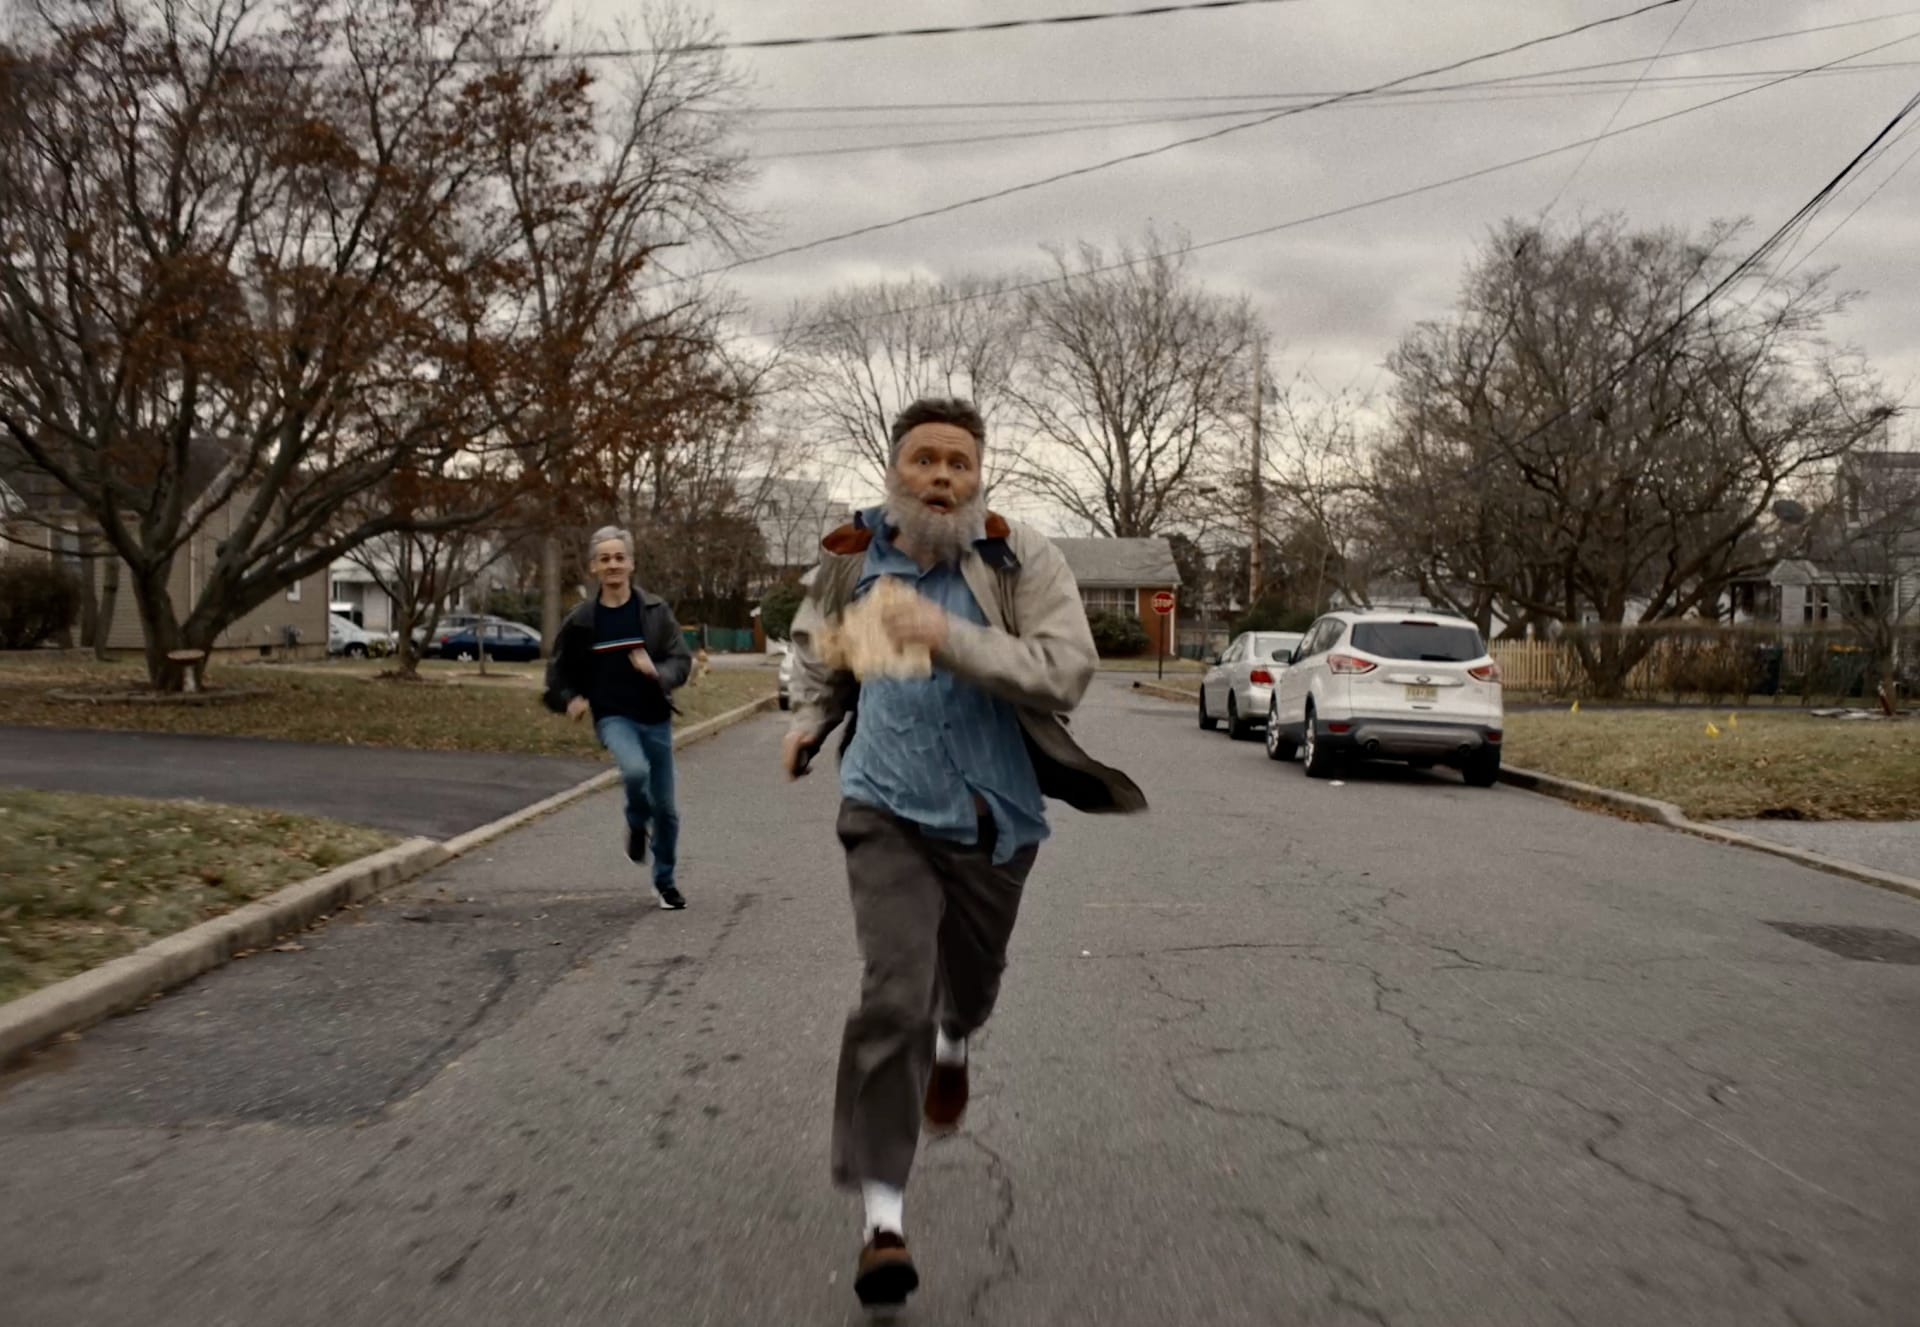 man running in the streets followed by another person running behind